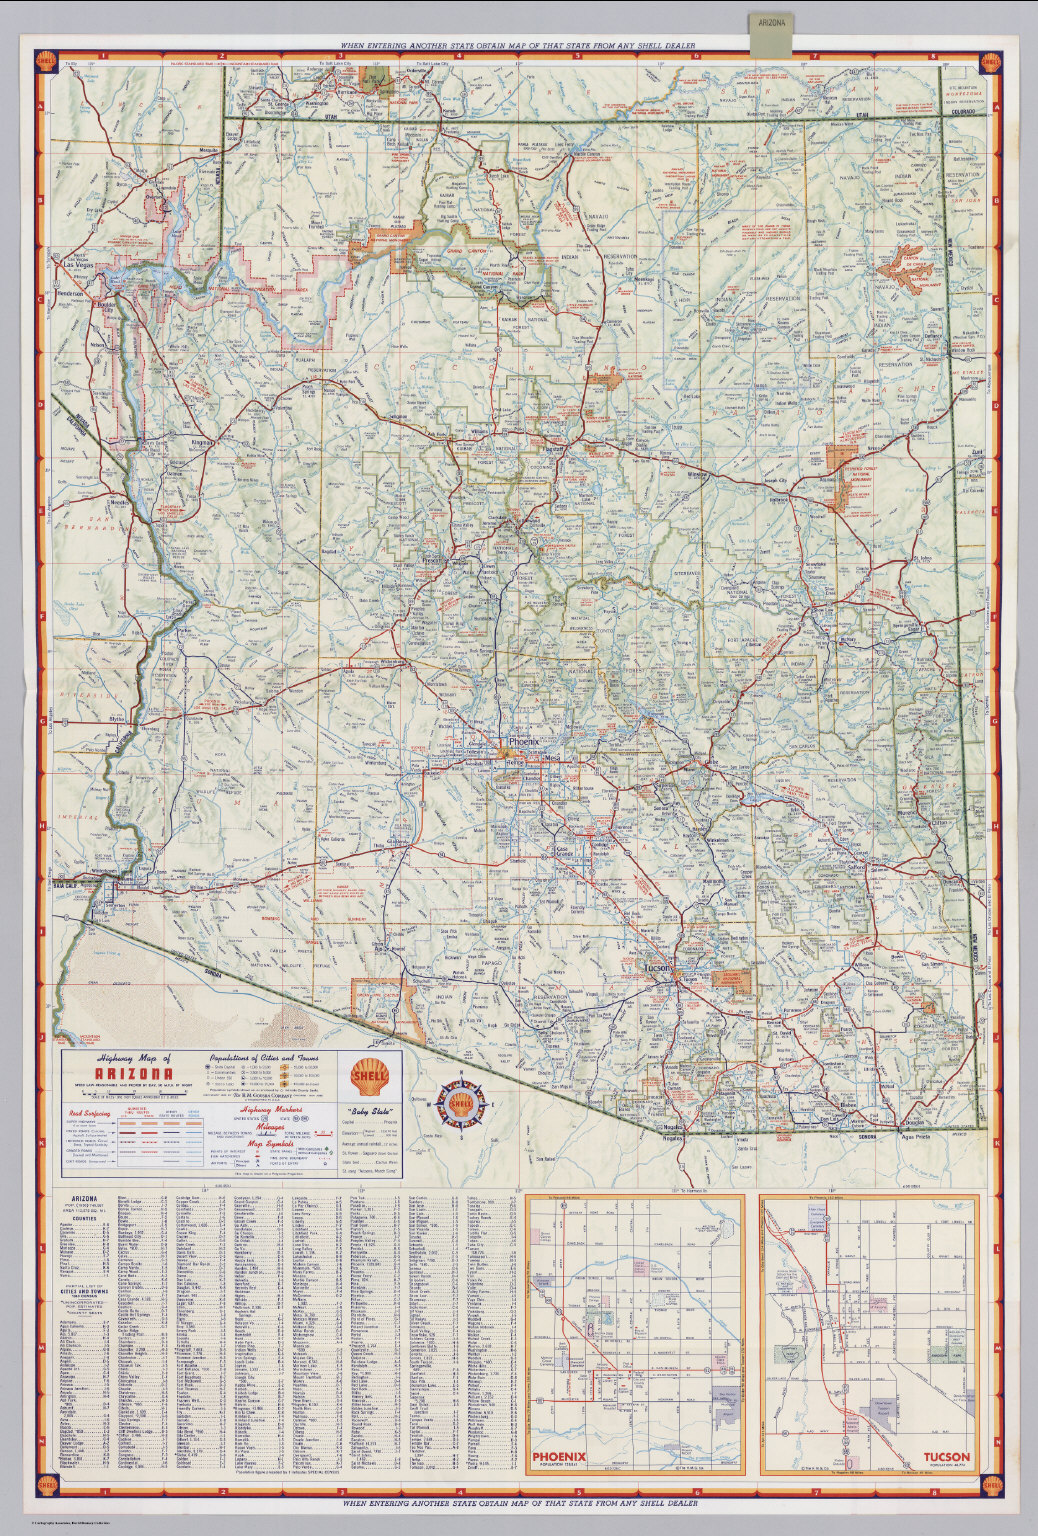 Shell Highway Map of Arizona David Rumsey Historical Map Collection